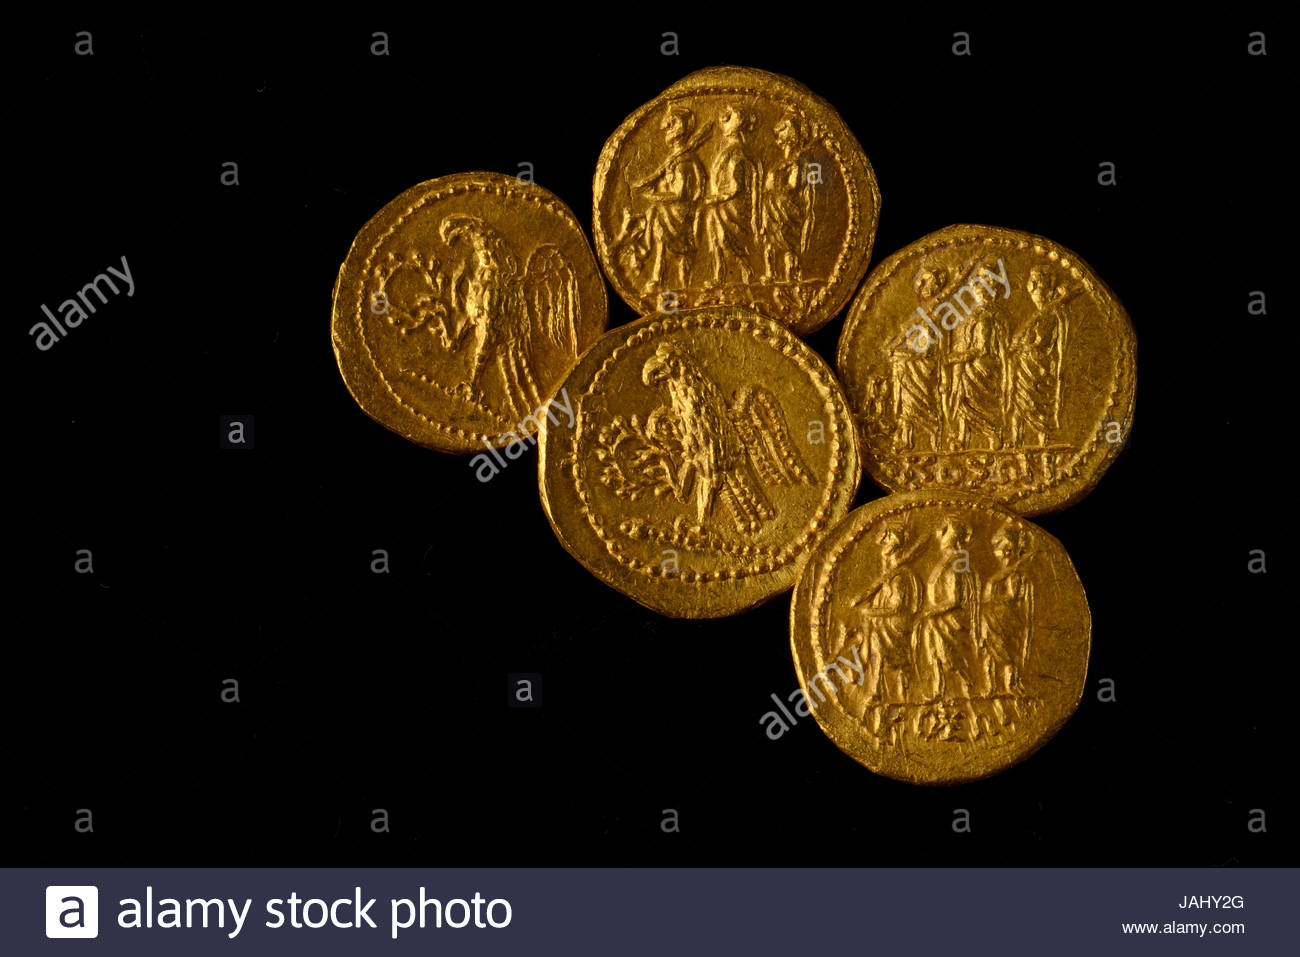 These gold coins with Roman imagery were looted from the ruins of Sarmizegetusa, the Dacian capital, and recovered - Stock Image